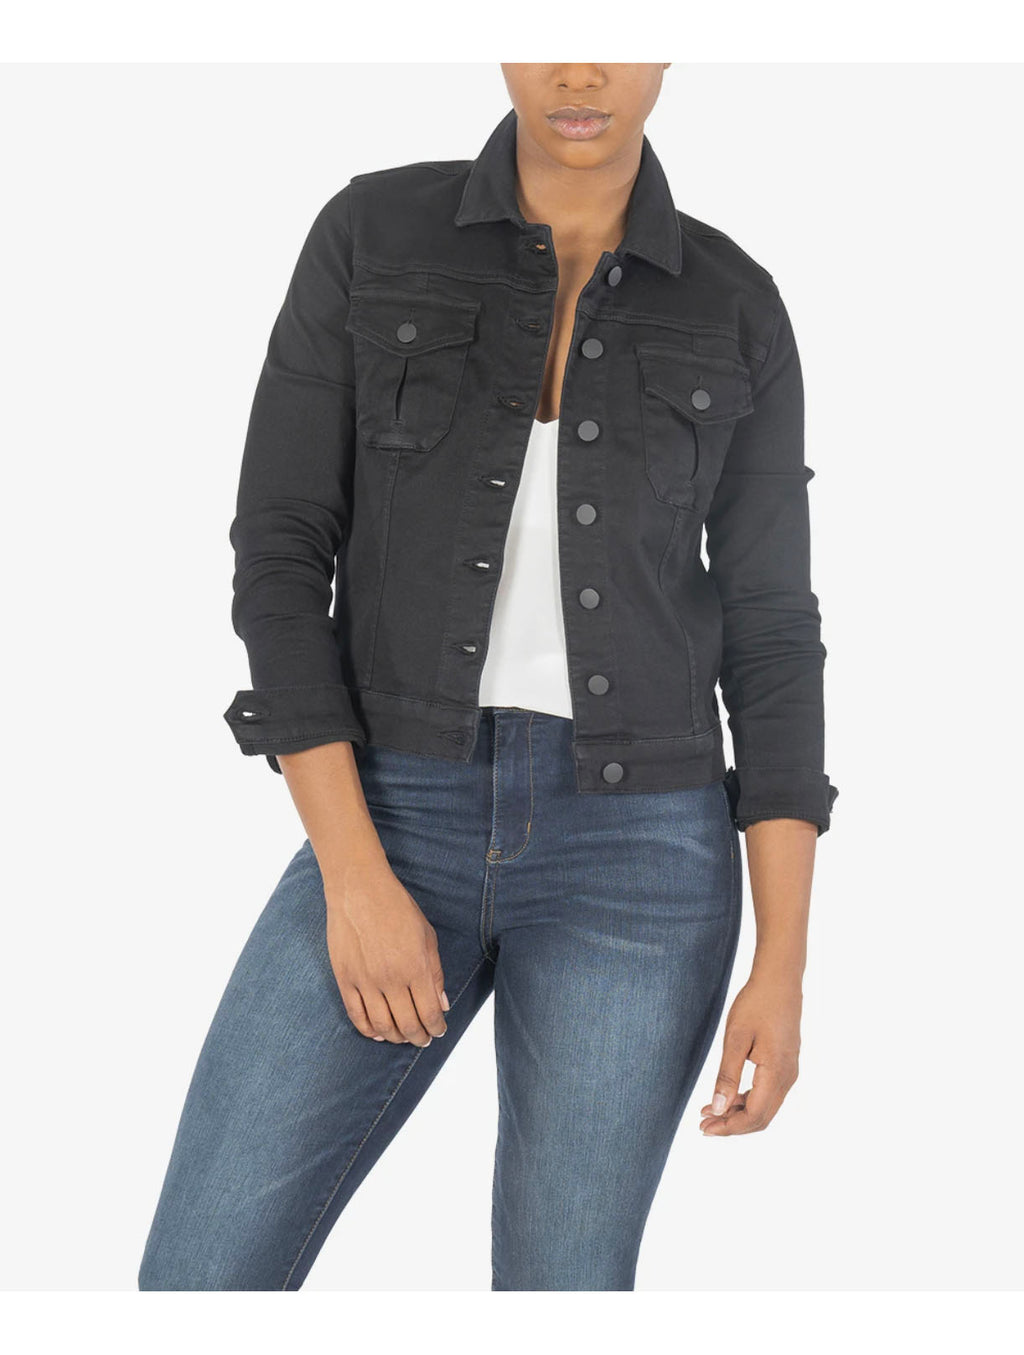 Kut Amelia Denim Jacket in Black